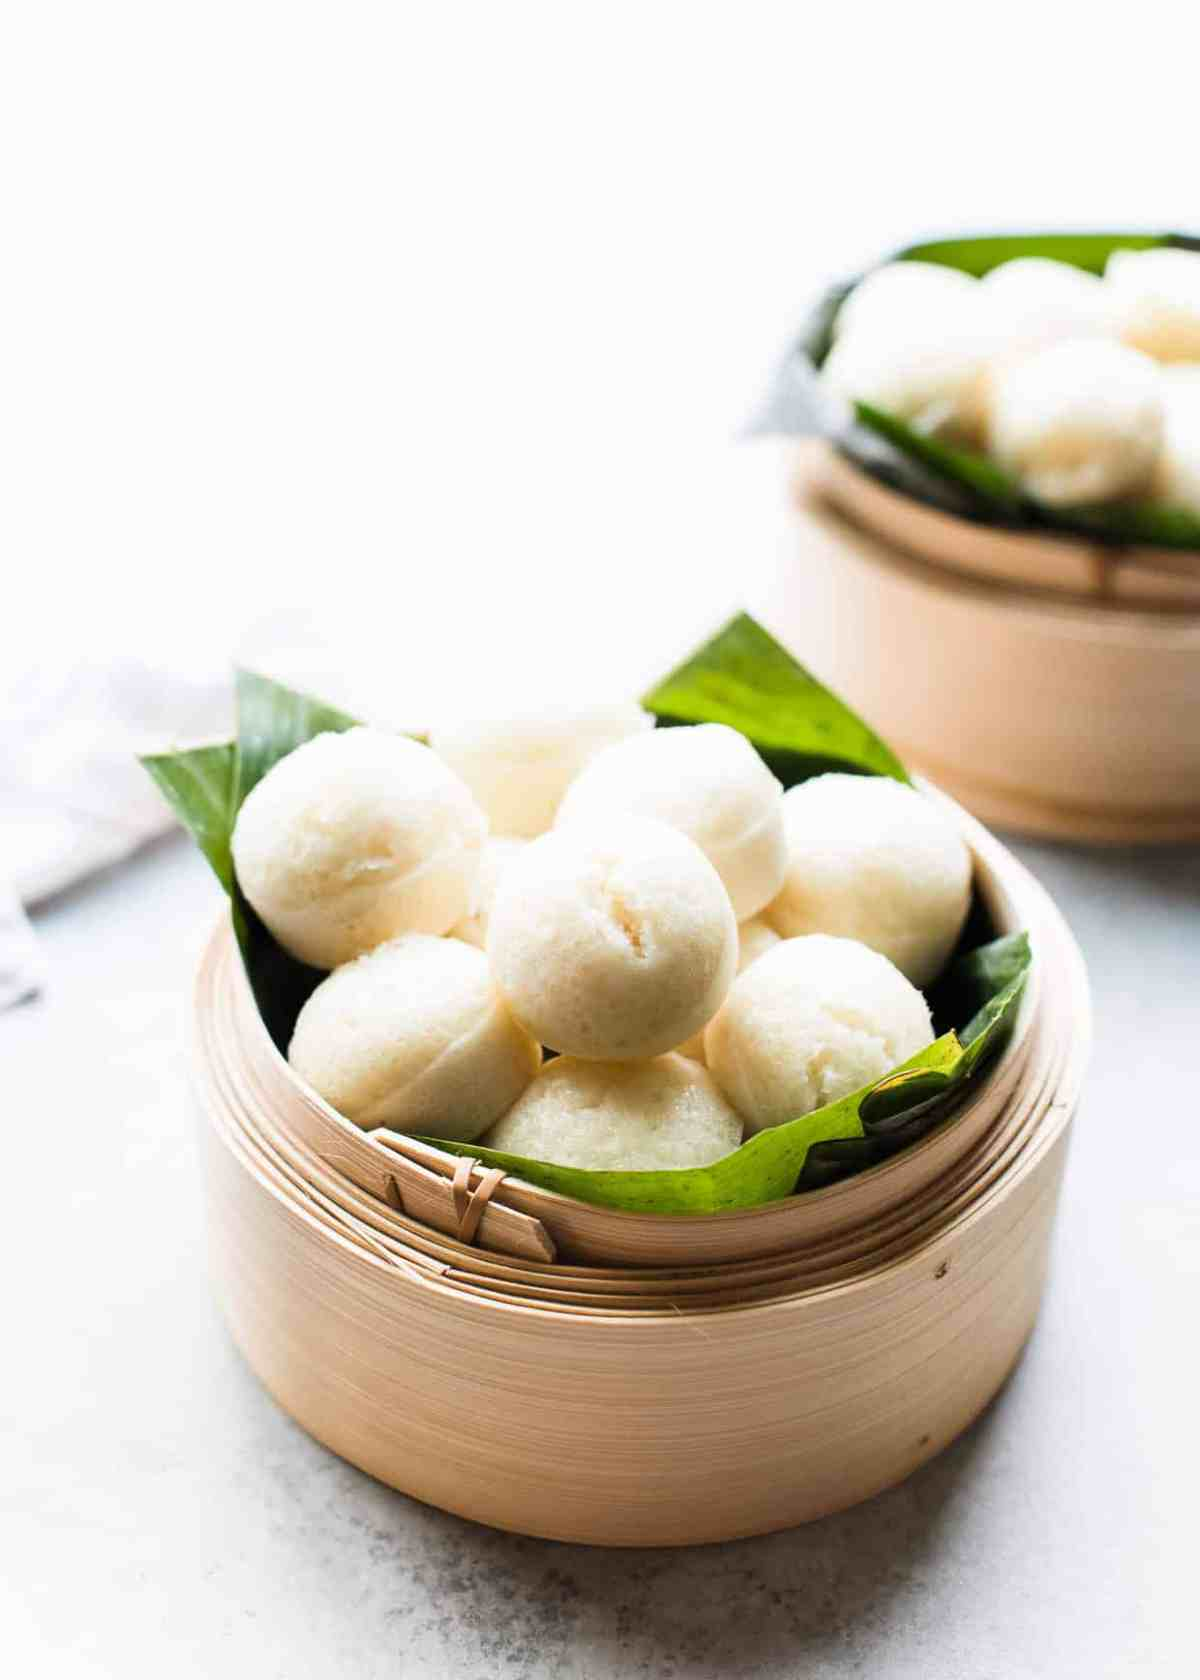 Mini steamed rice cakes, or puto, in a bamboo steamer.